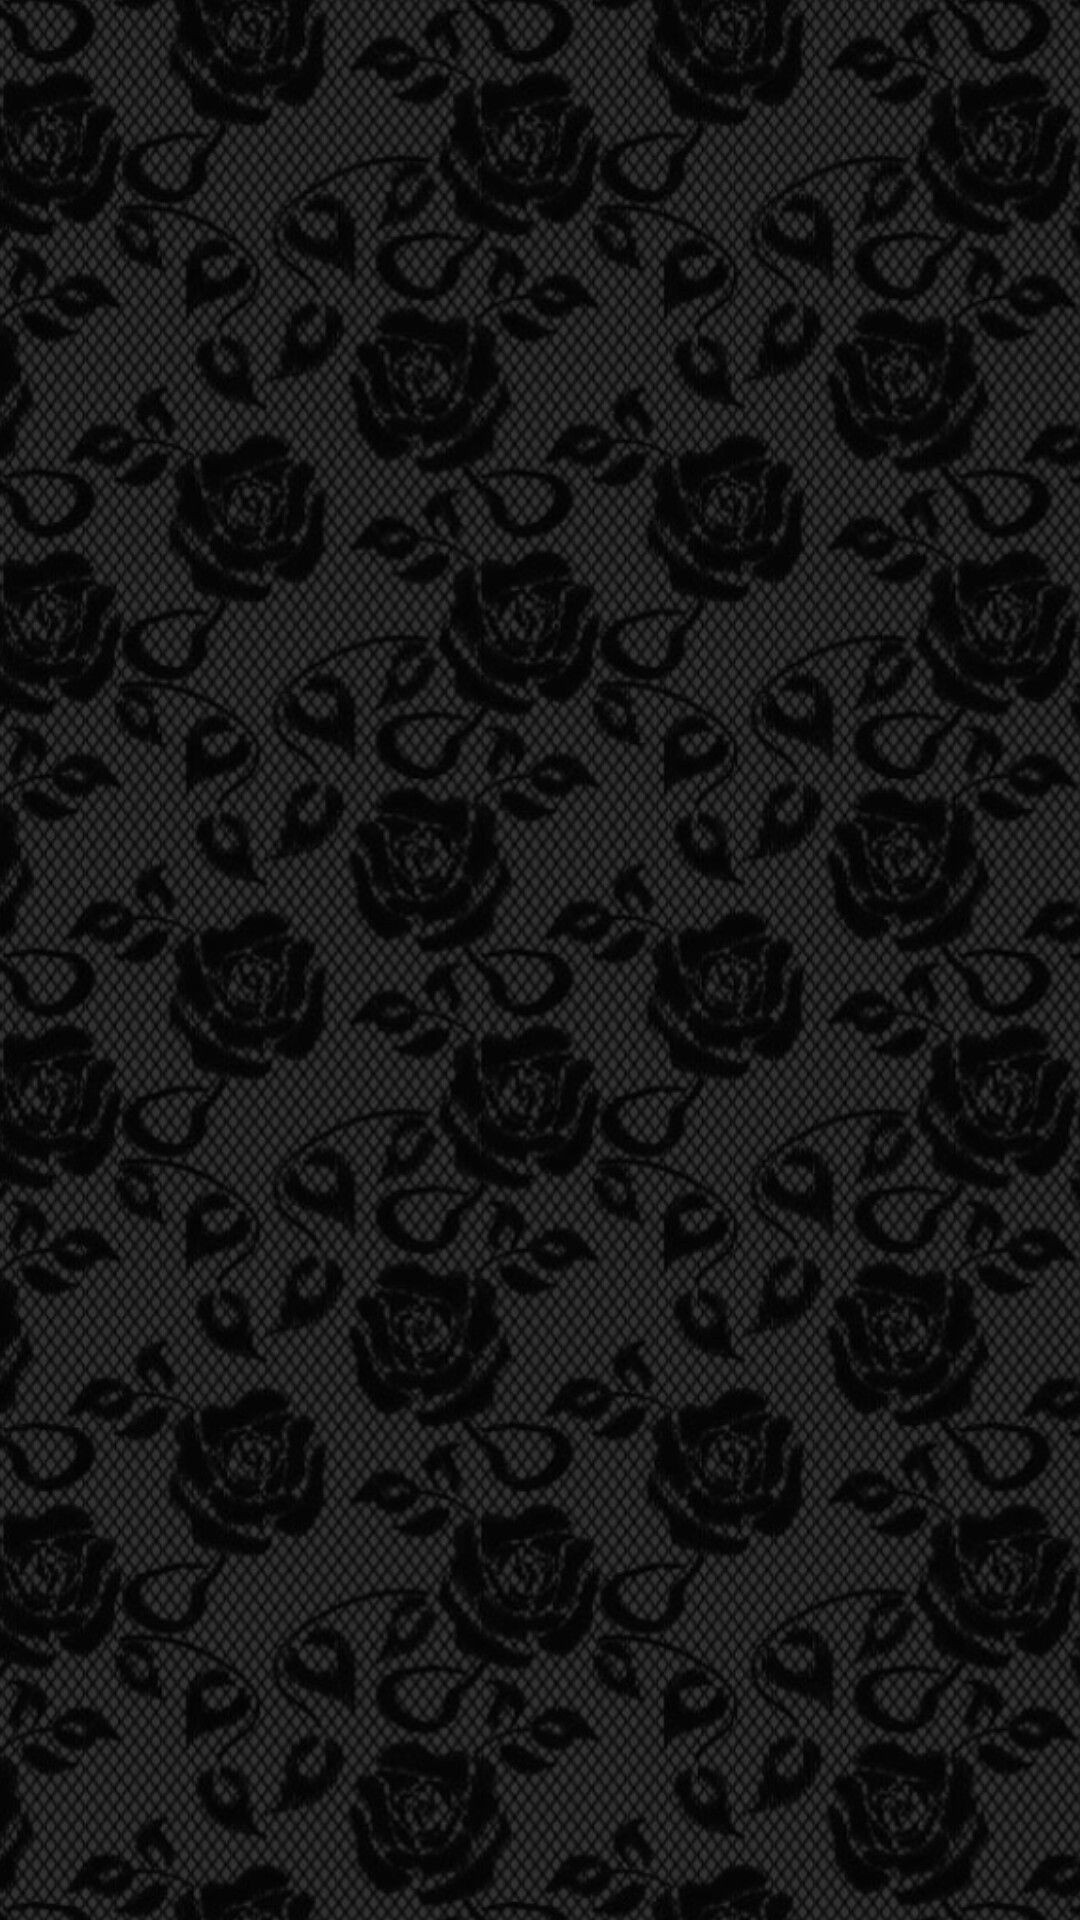 Wallpaper Size Wallpaper For Your Phone Vintage Phone Wallpaper Mobile Wallpaper Cellphone